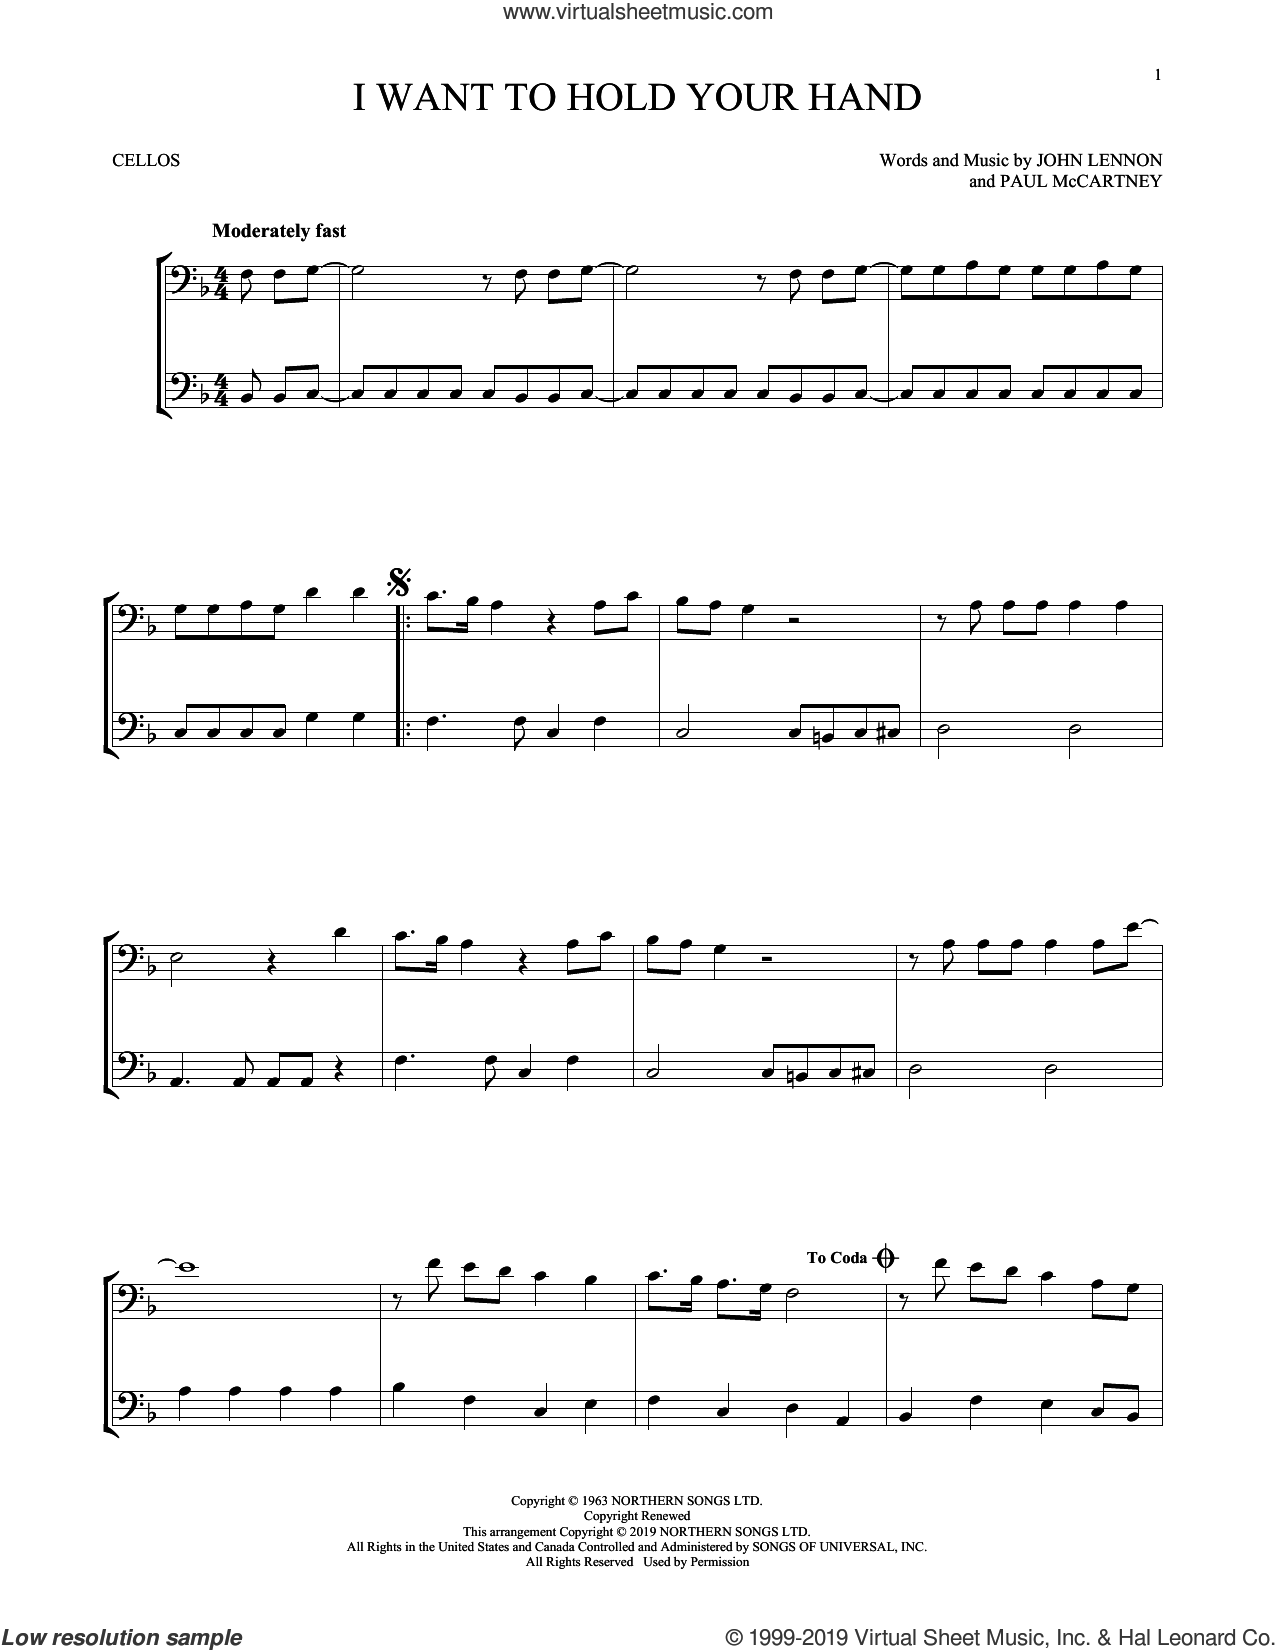 I Want To Hold Your Hand sheet music for two cellos (duet, duets) by The Beatles, John Lennon and Paul McCartney, intermediate skill level